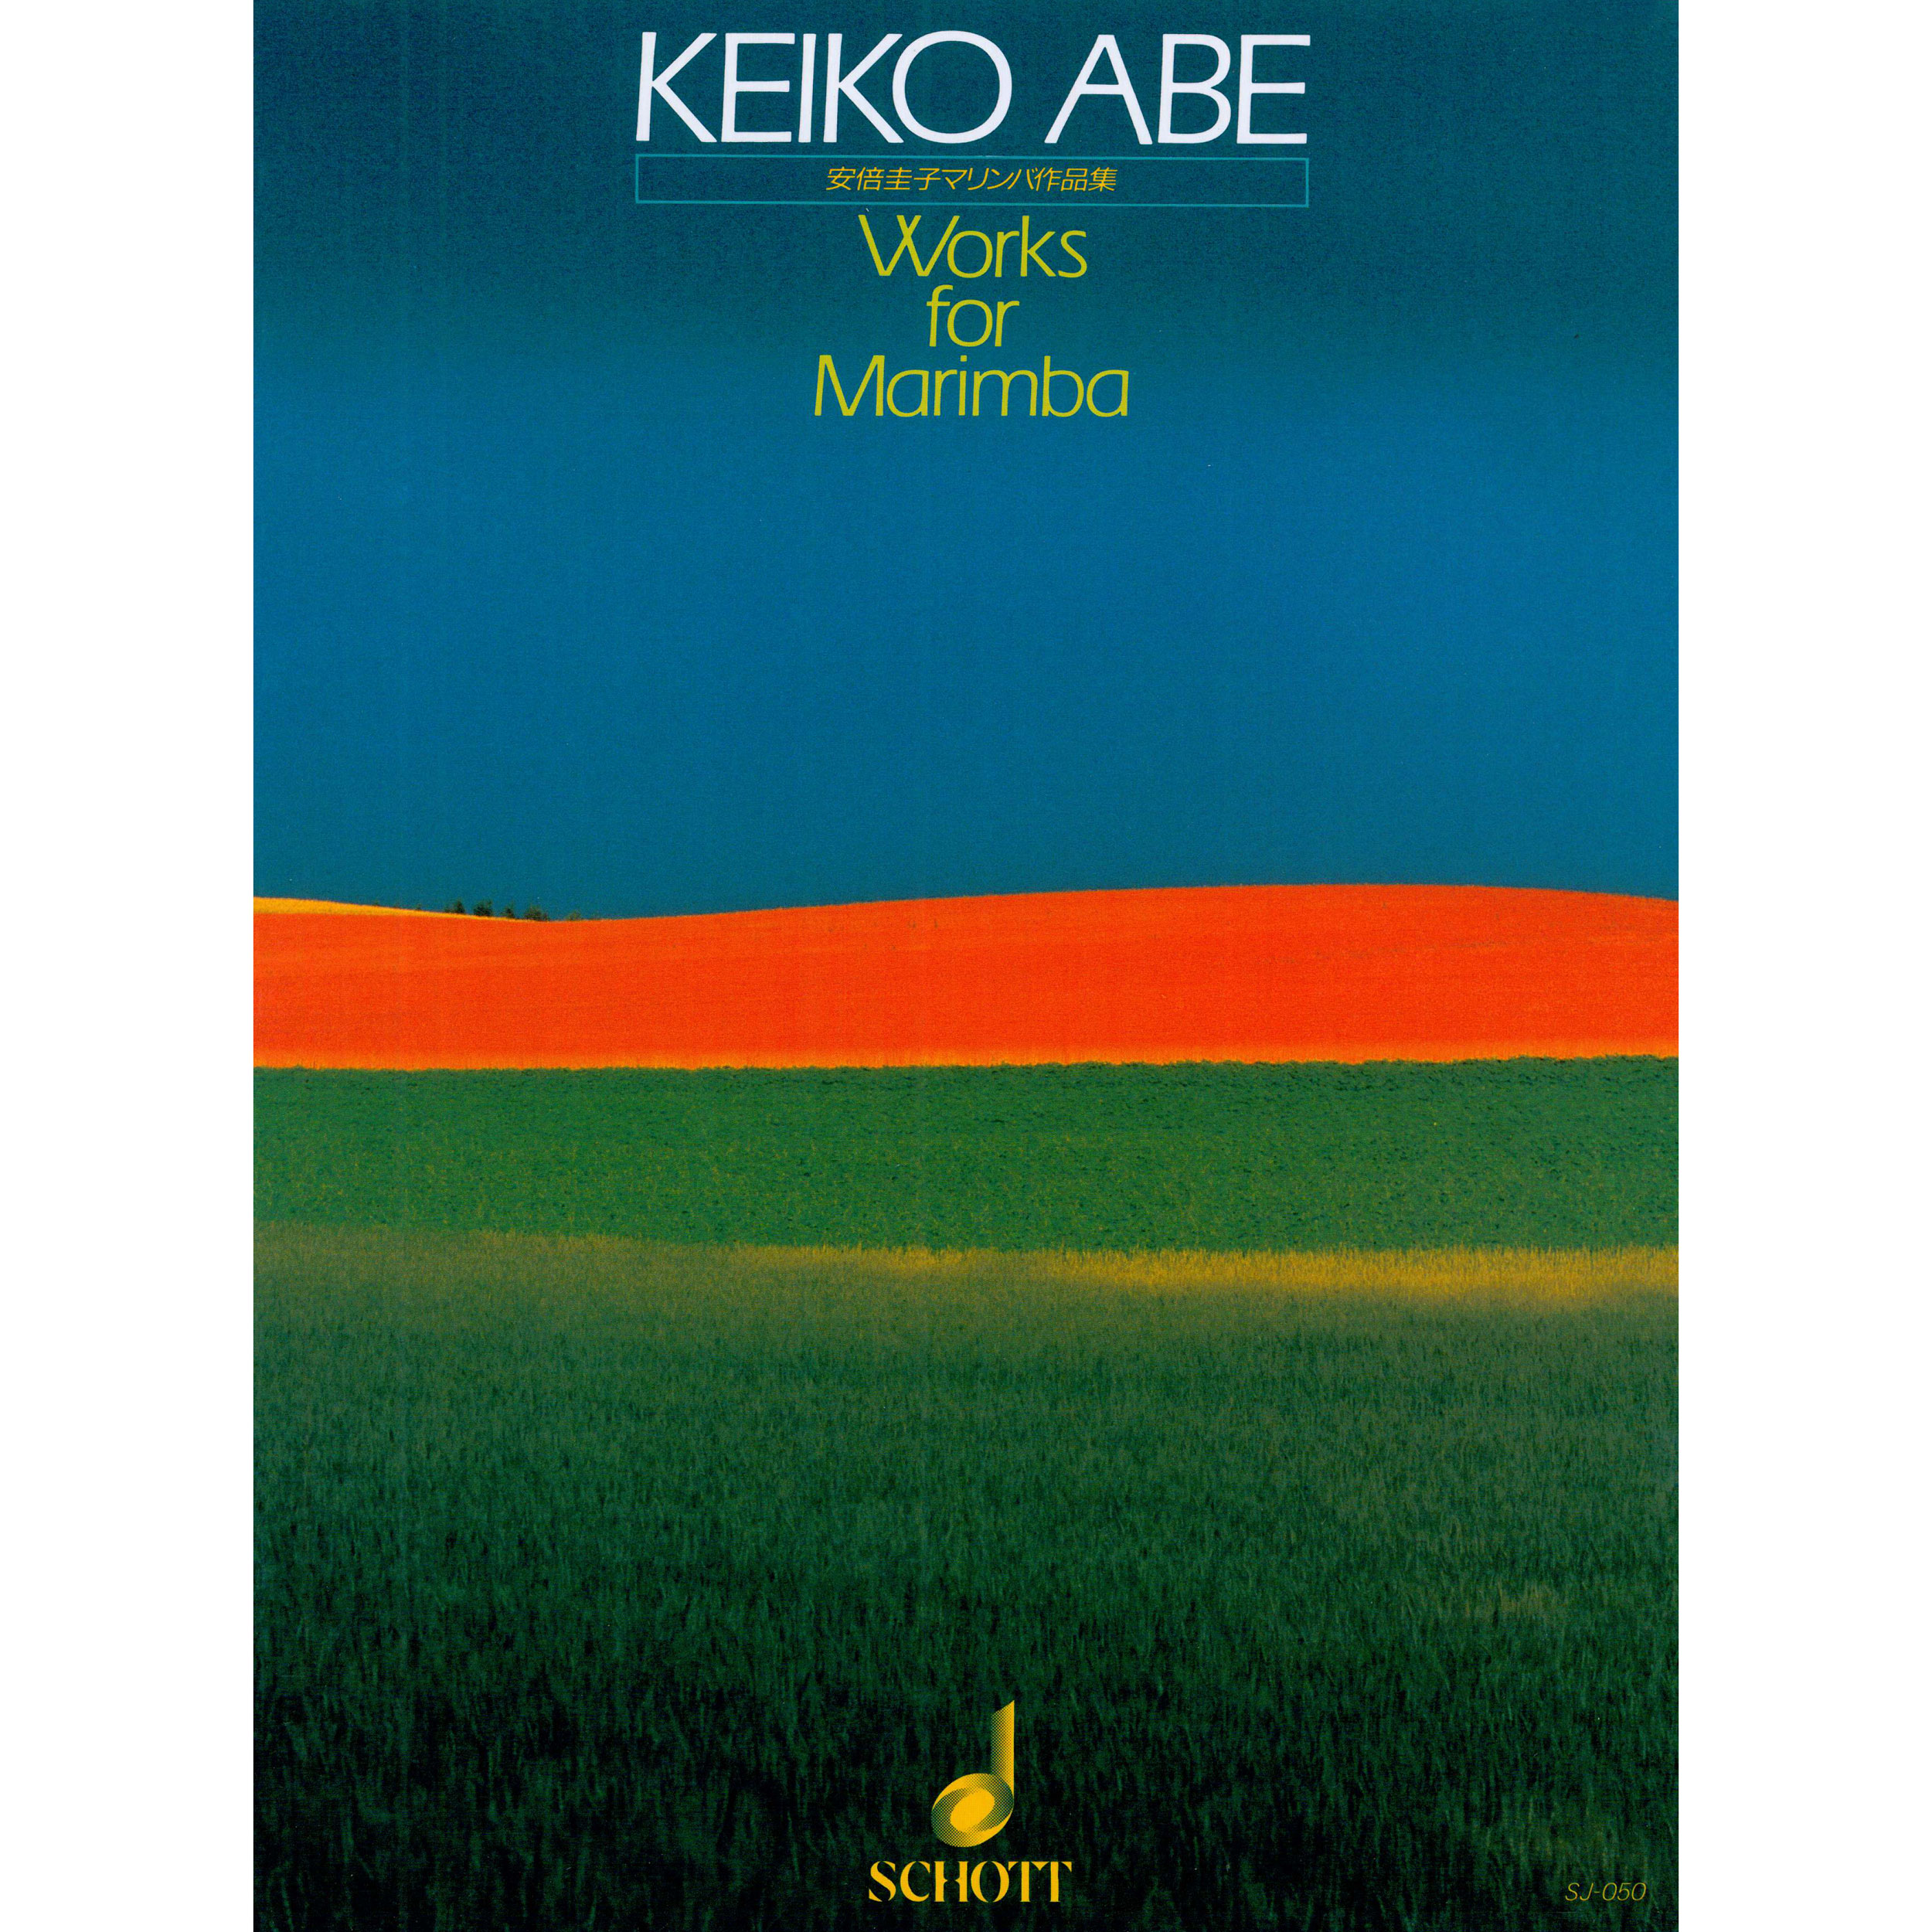 Works for Marimba by Keiko Abe